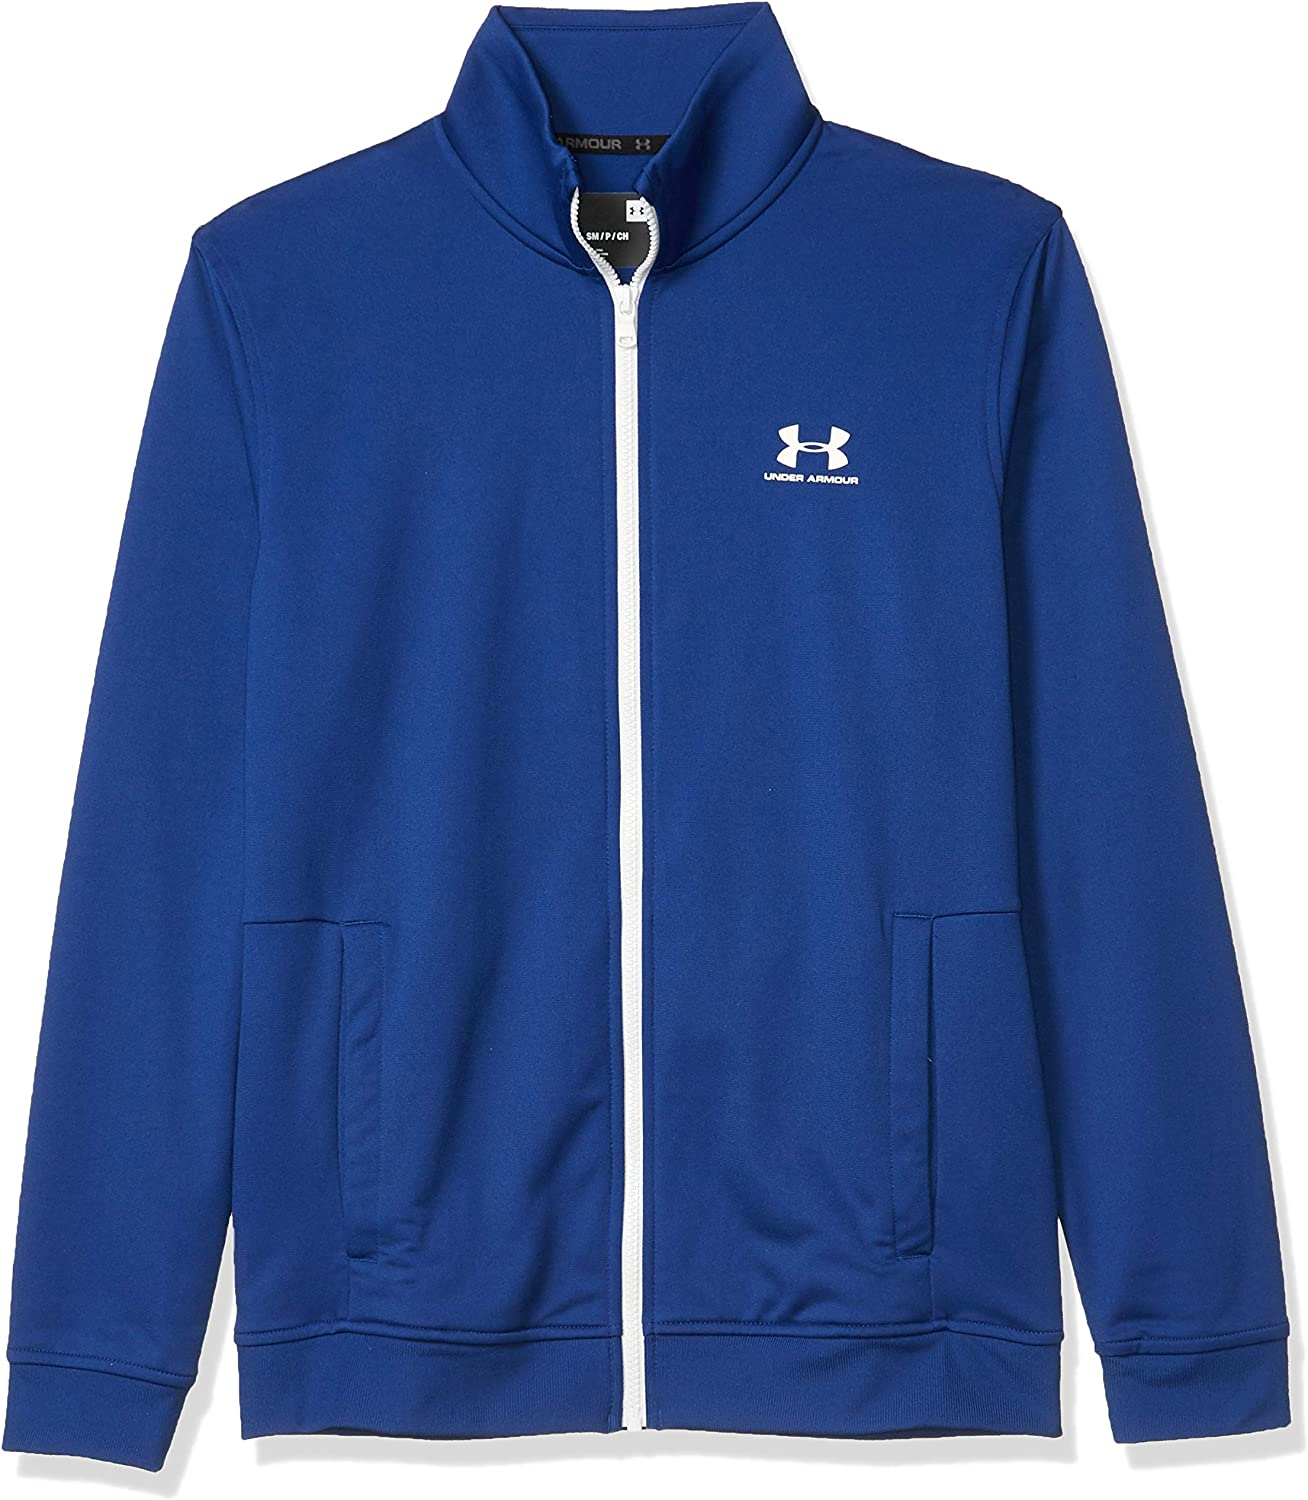 Under Armour Men's 25% OFF supreme Tricot Sportstyle Jacket